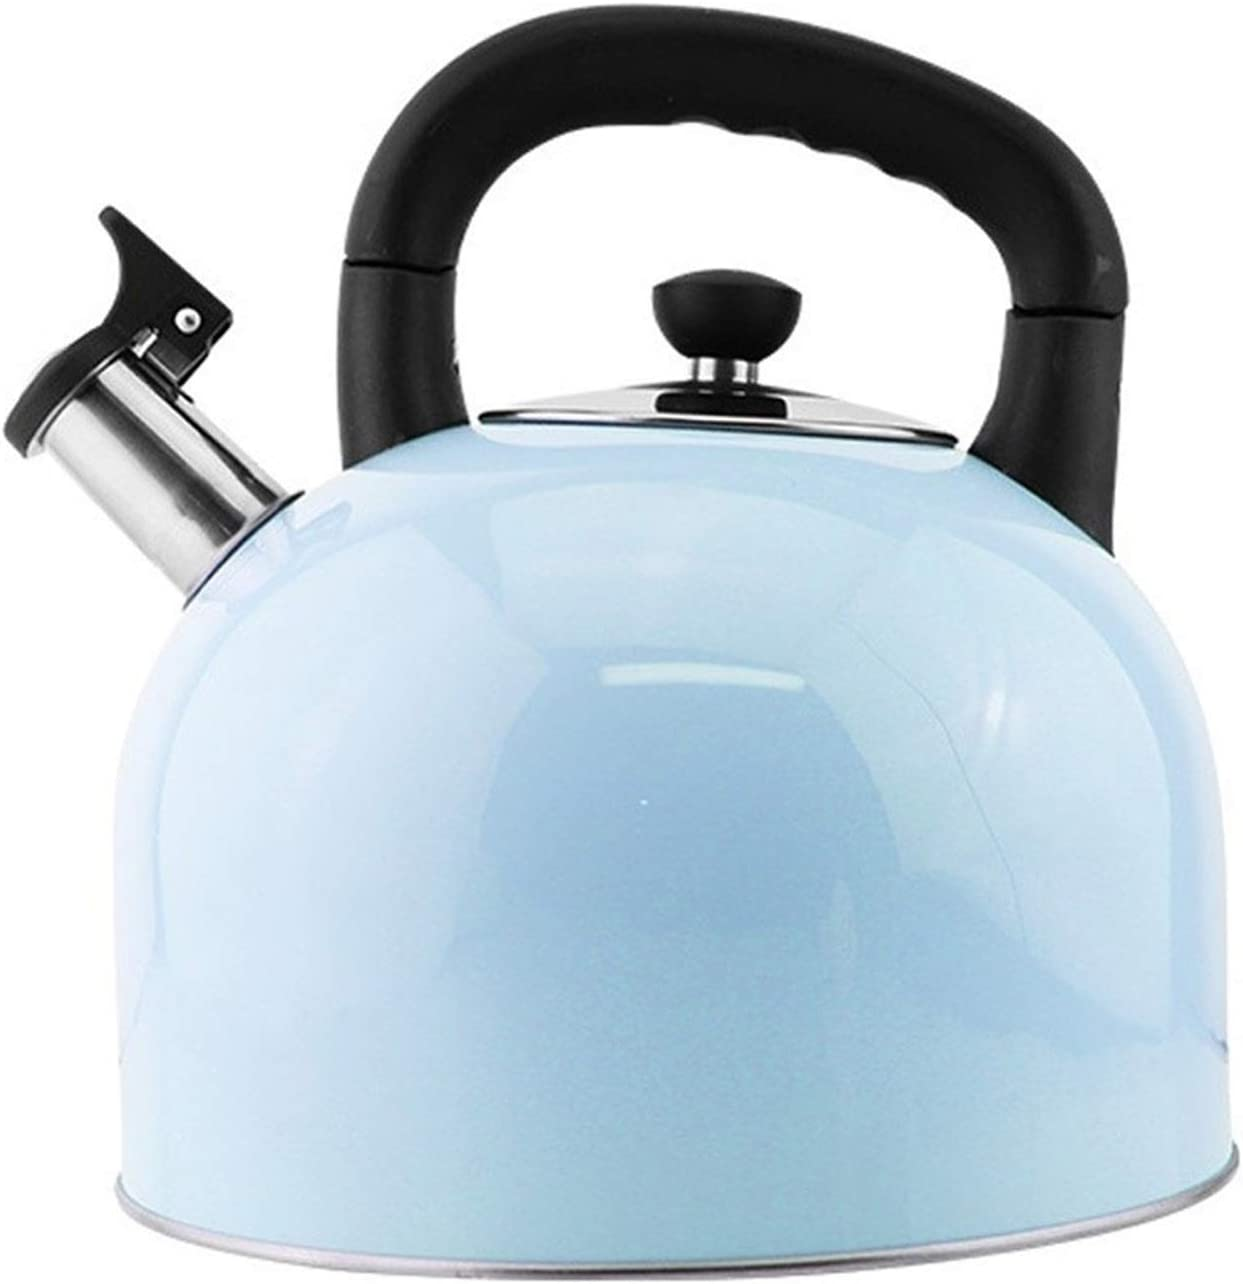 Whistling Stainless Steel 4-5 Liter 25% OFF M Popular standard Stylish Teapot Appearance